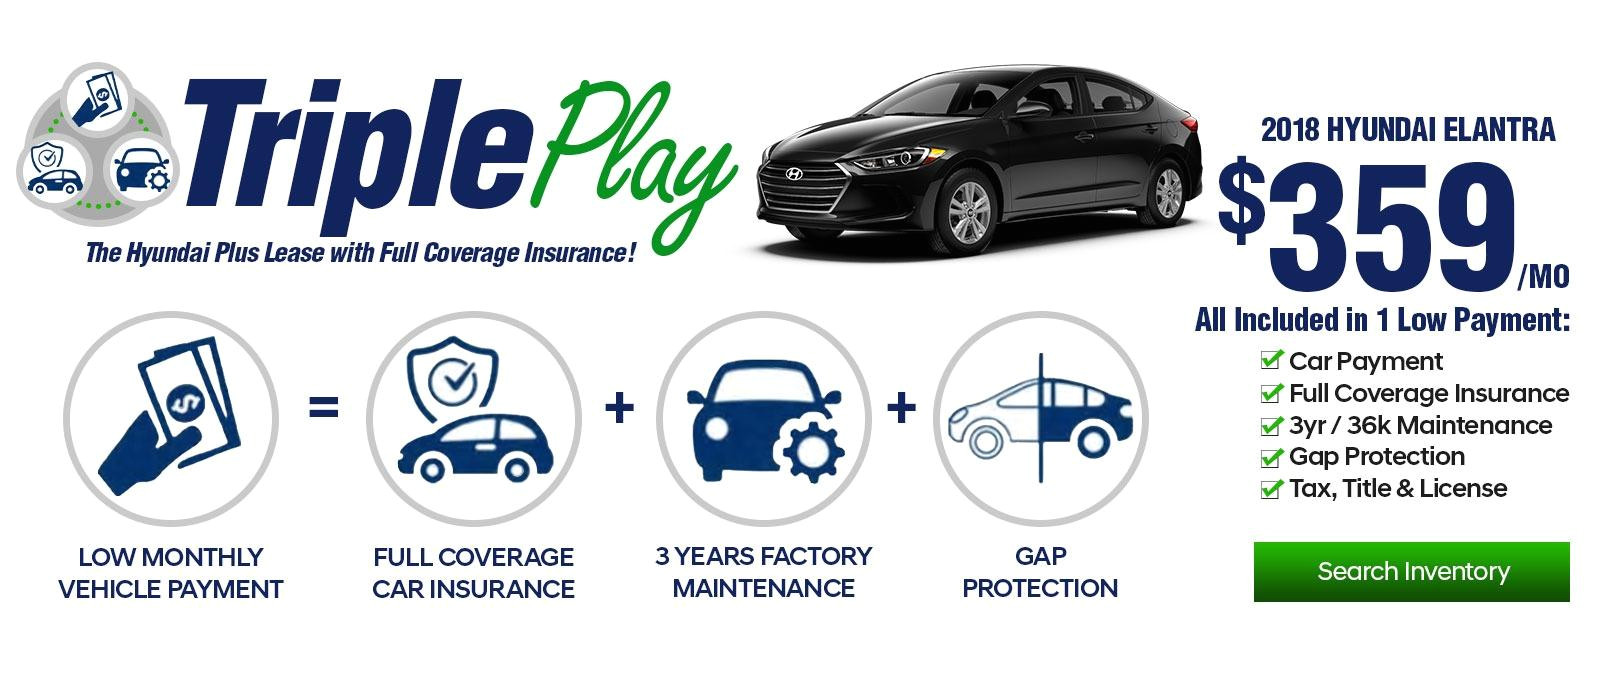 triple play 2018 hyundai elantra 359 mo